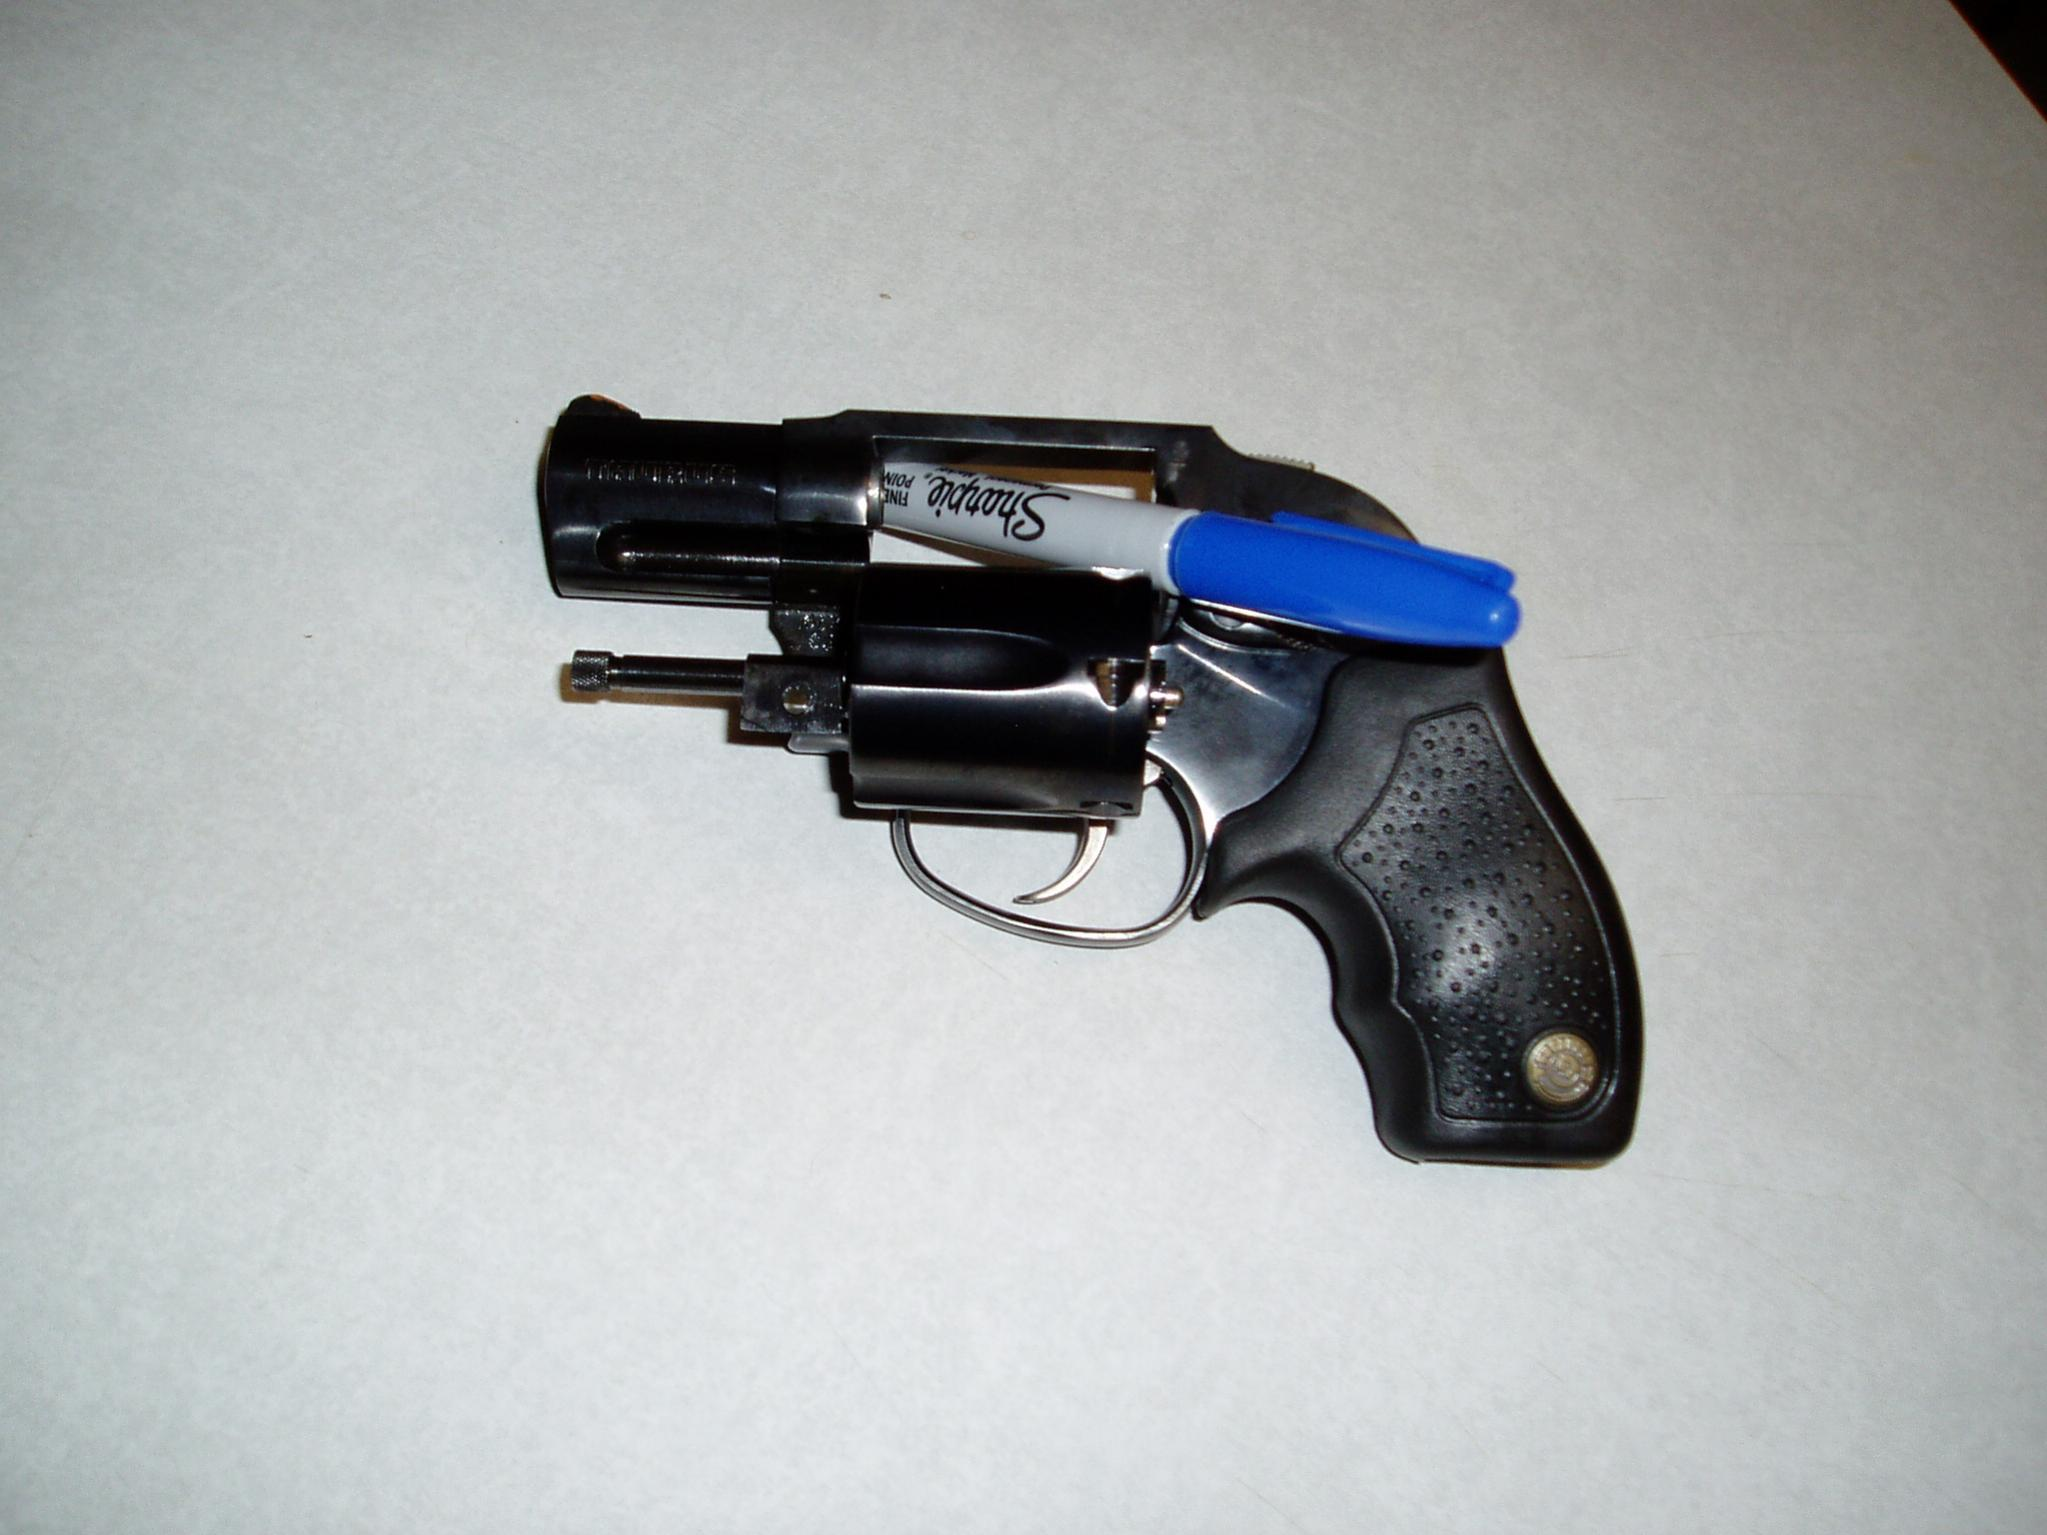 Wife Wants To Get A Hammerless Revolver For CC     Which